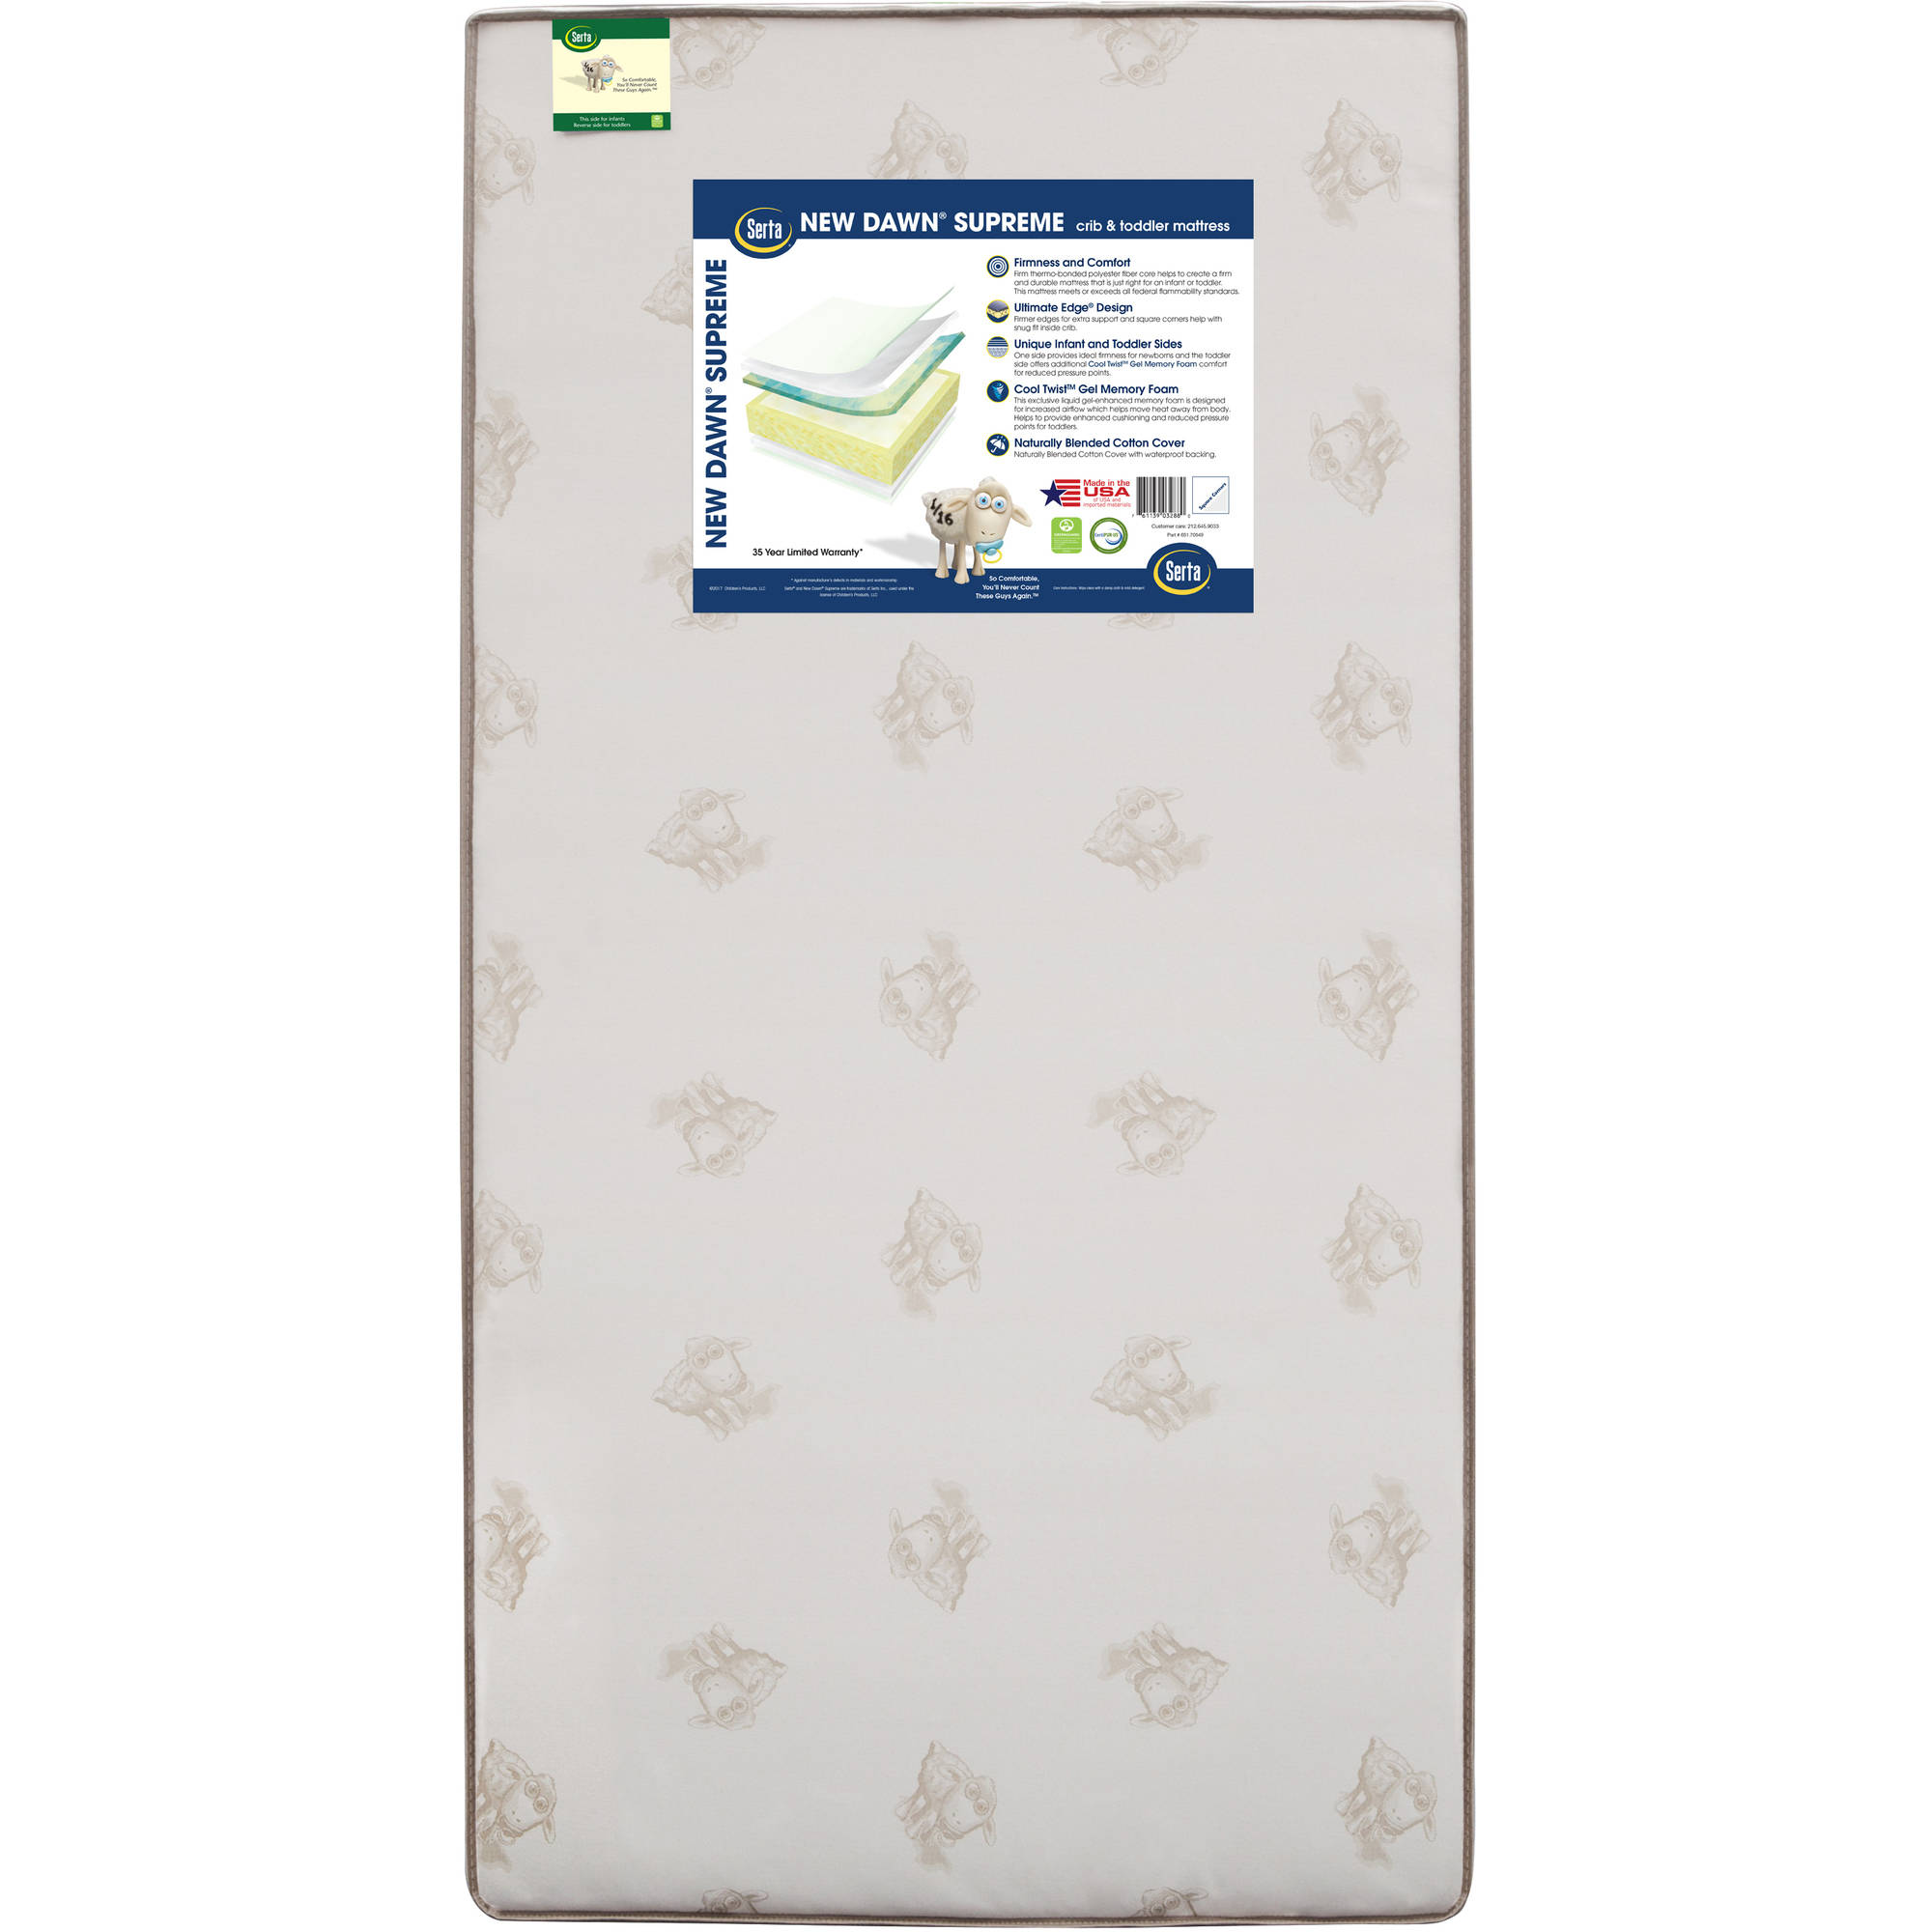 serta new dawn supreme crib and toddler mattress walmart com